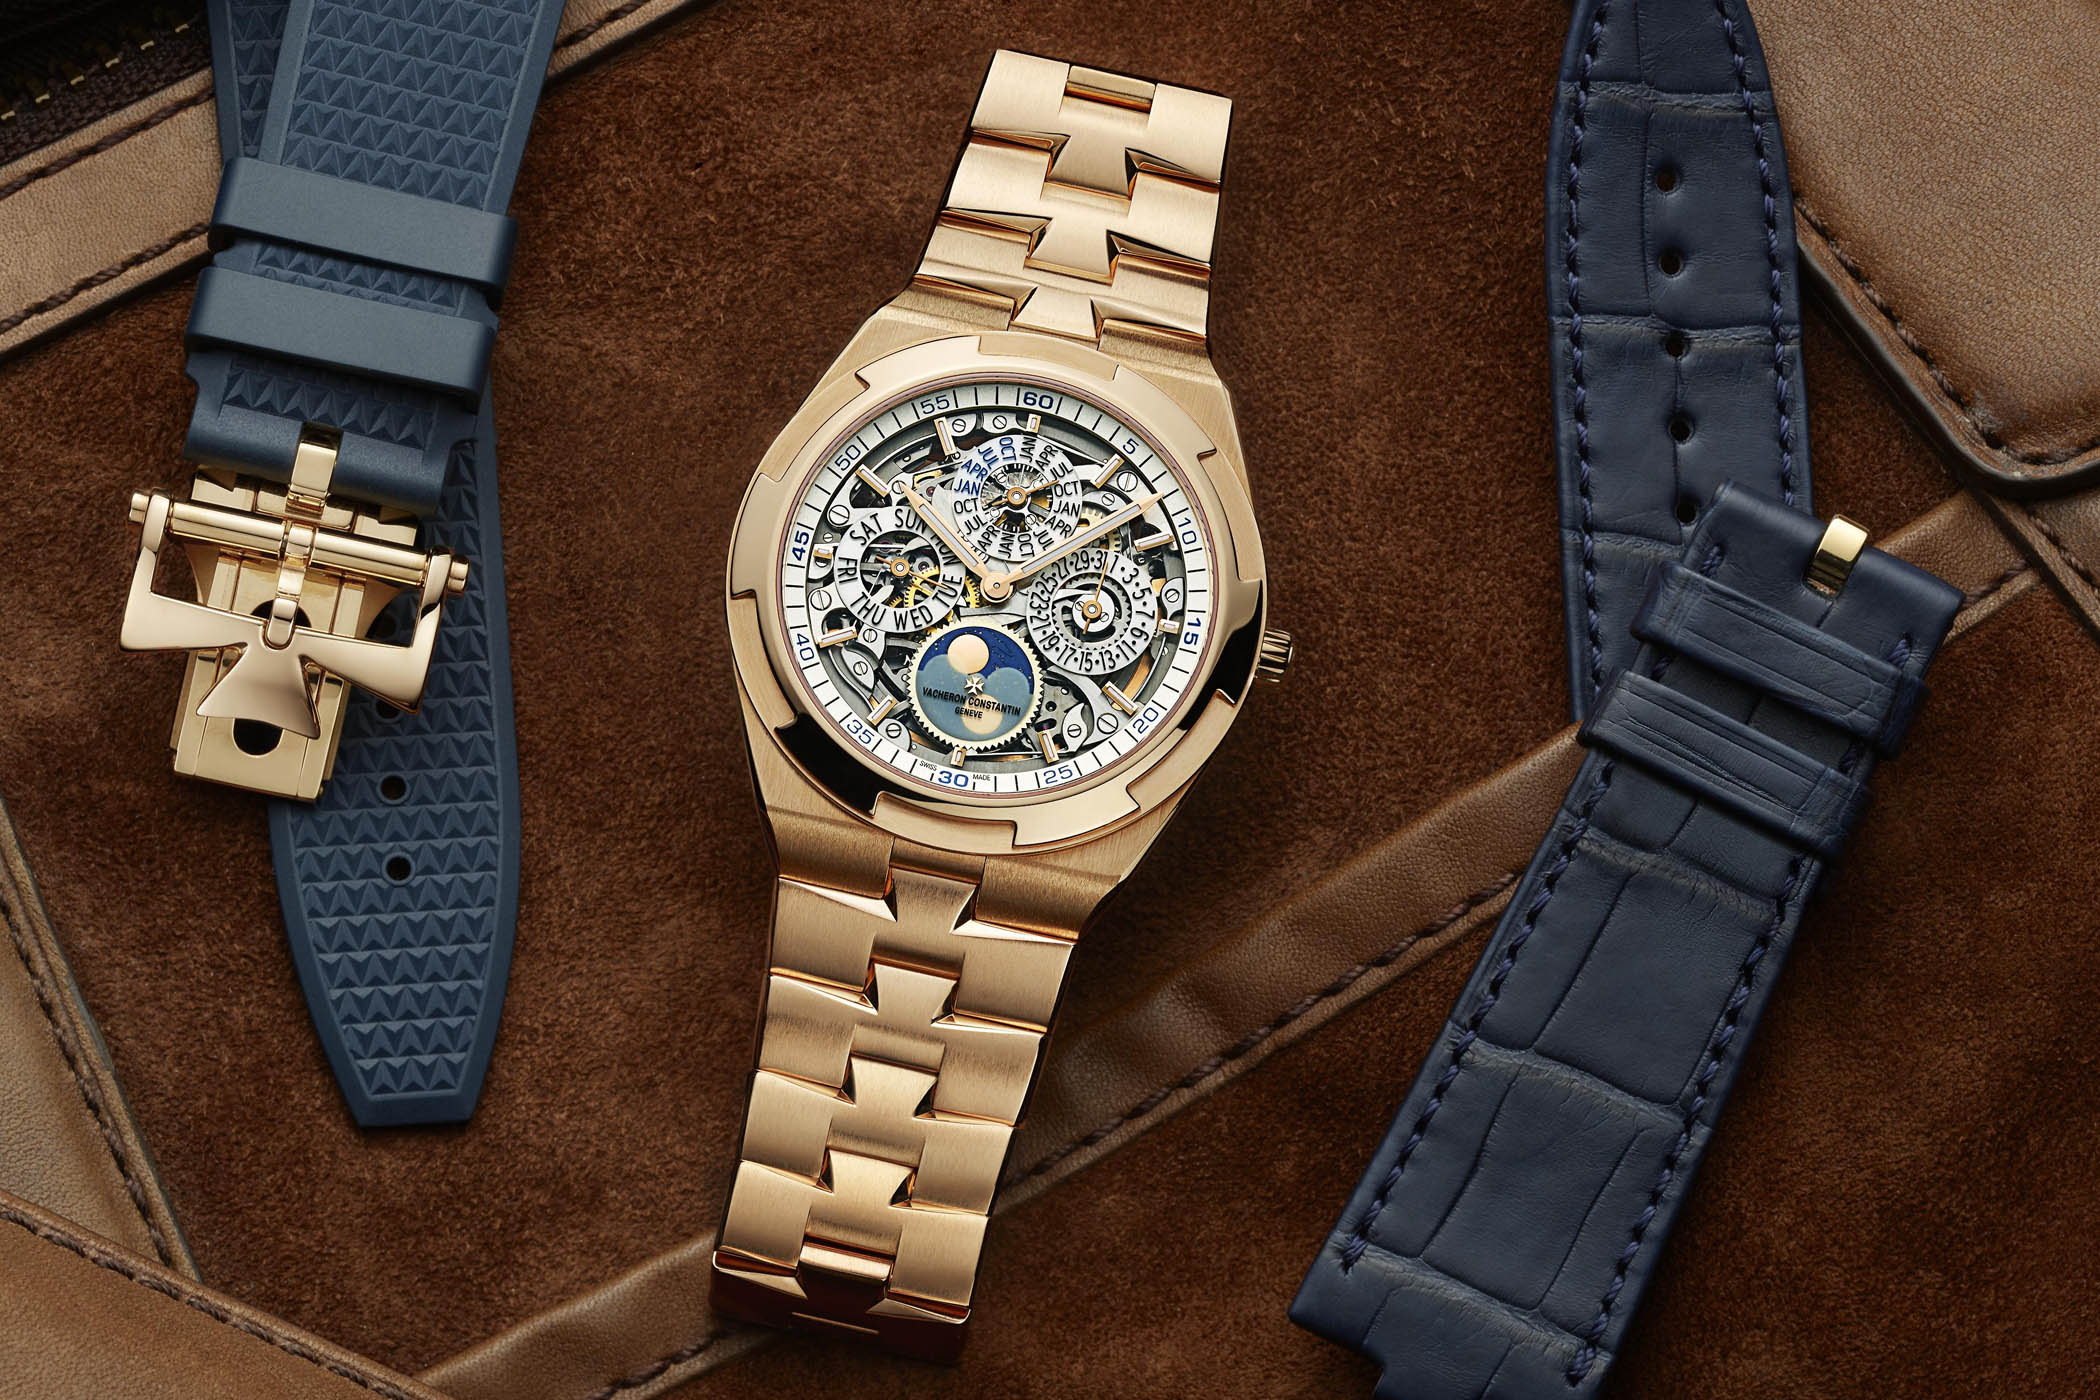 The Top 5 Luxury Timepieces Of 2020 (So Far!) luxury timepiece The Top 5 Luxury Timepieces Of 2020 (So Far!) The Top 5 Luxury Timepieces Of 2020 So Far 10